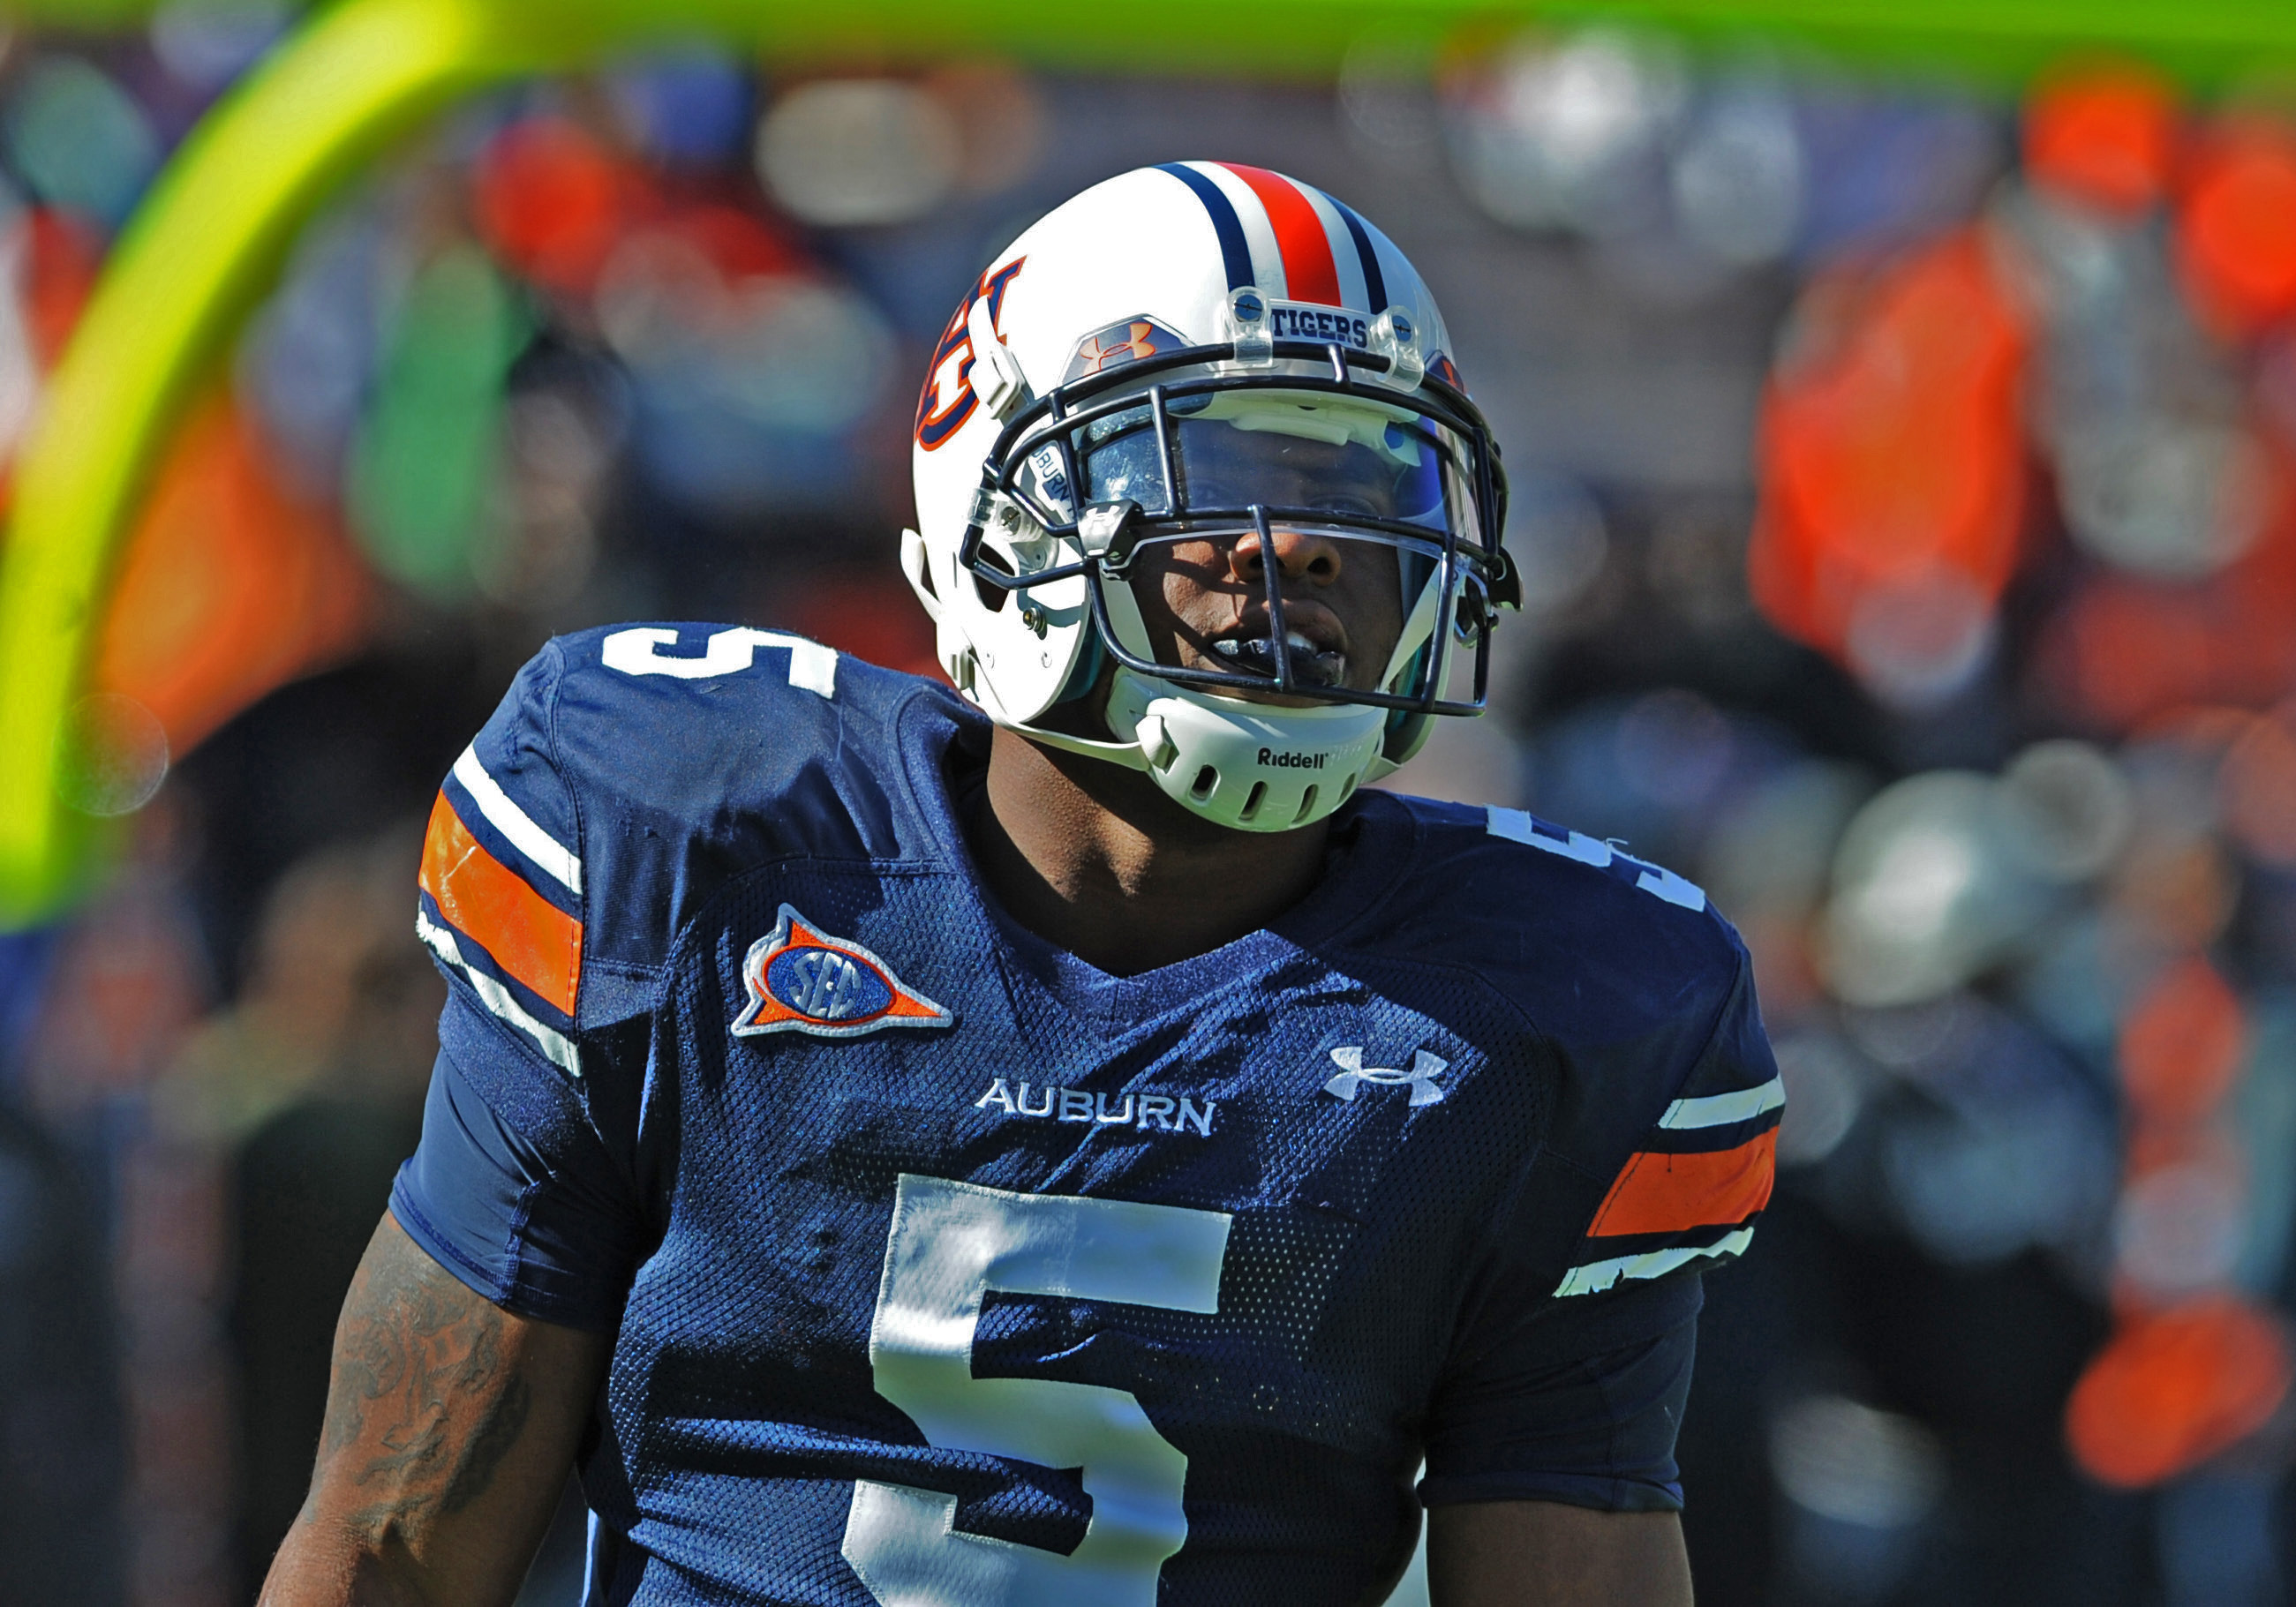 AUBURN, AL - NOVEMBER 06:  Running back Michael Dyer #5 of the Auburn Tigers warms up before play against the Chattanooga Mocs November 6, 2010 at Jordan-Hare Stadium in Auburn, Alabama.  (Photo by Al Messerschmidt/Getty Images)